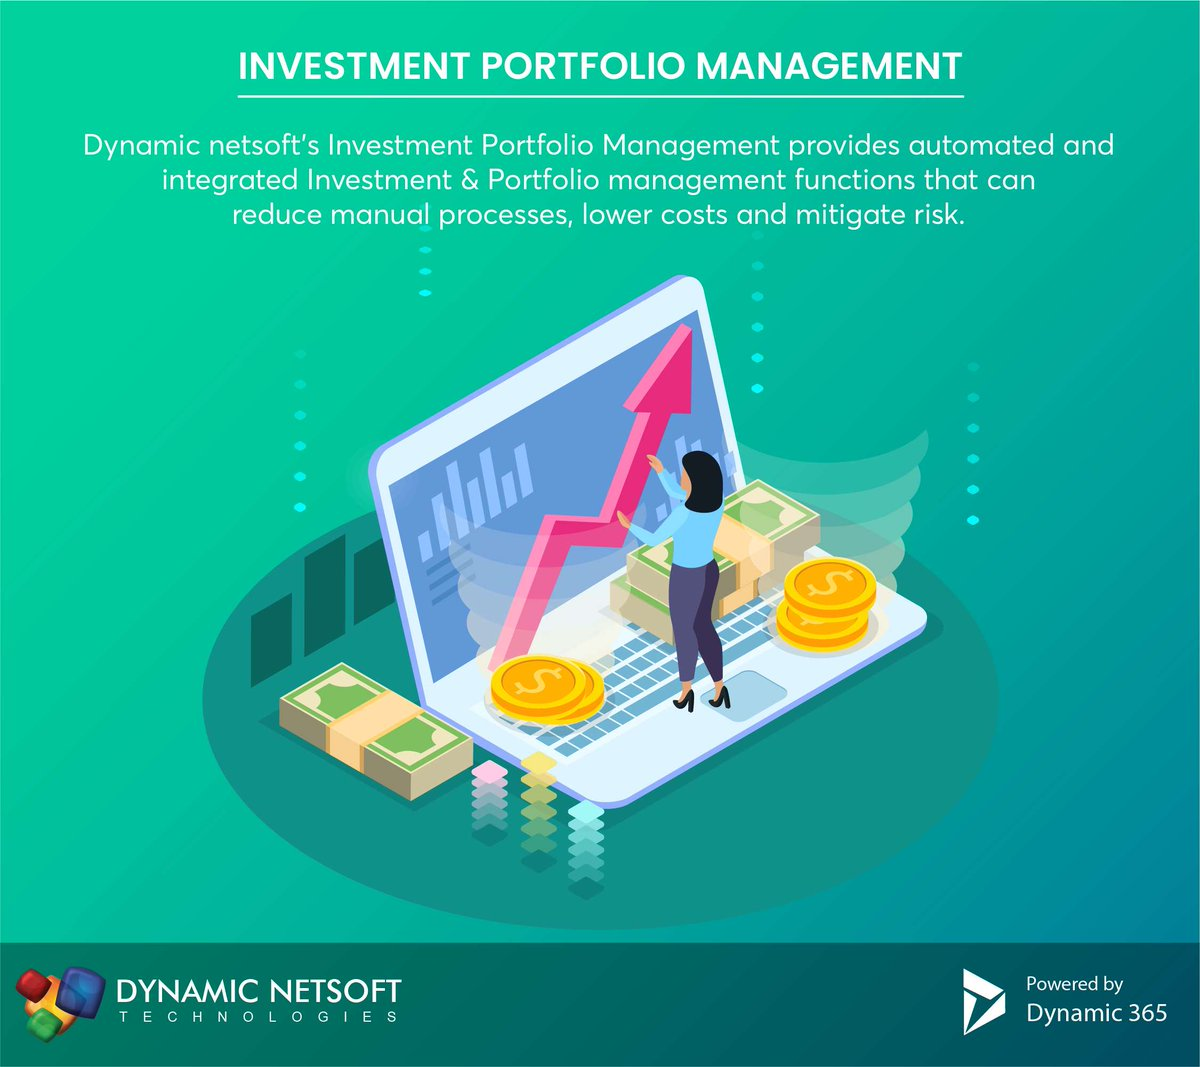 Dynamic Netsoft's Investment Portfolio Management provides automated and integrated investment & portfolio management functions that can reduce manual processes,lower costs and mitigate risk.More  http:// stuf.in/b2nbg1         #IPM #Dnetsoft #Microsoftpartner #microsoftgoldpartner <br>http://pic.twitter.com/RljLZ2oDkp